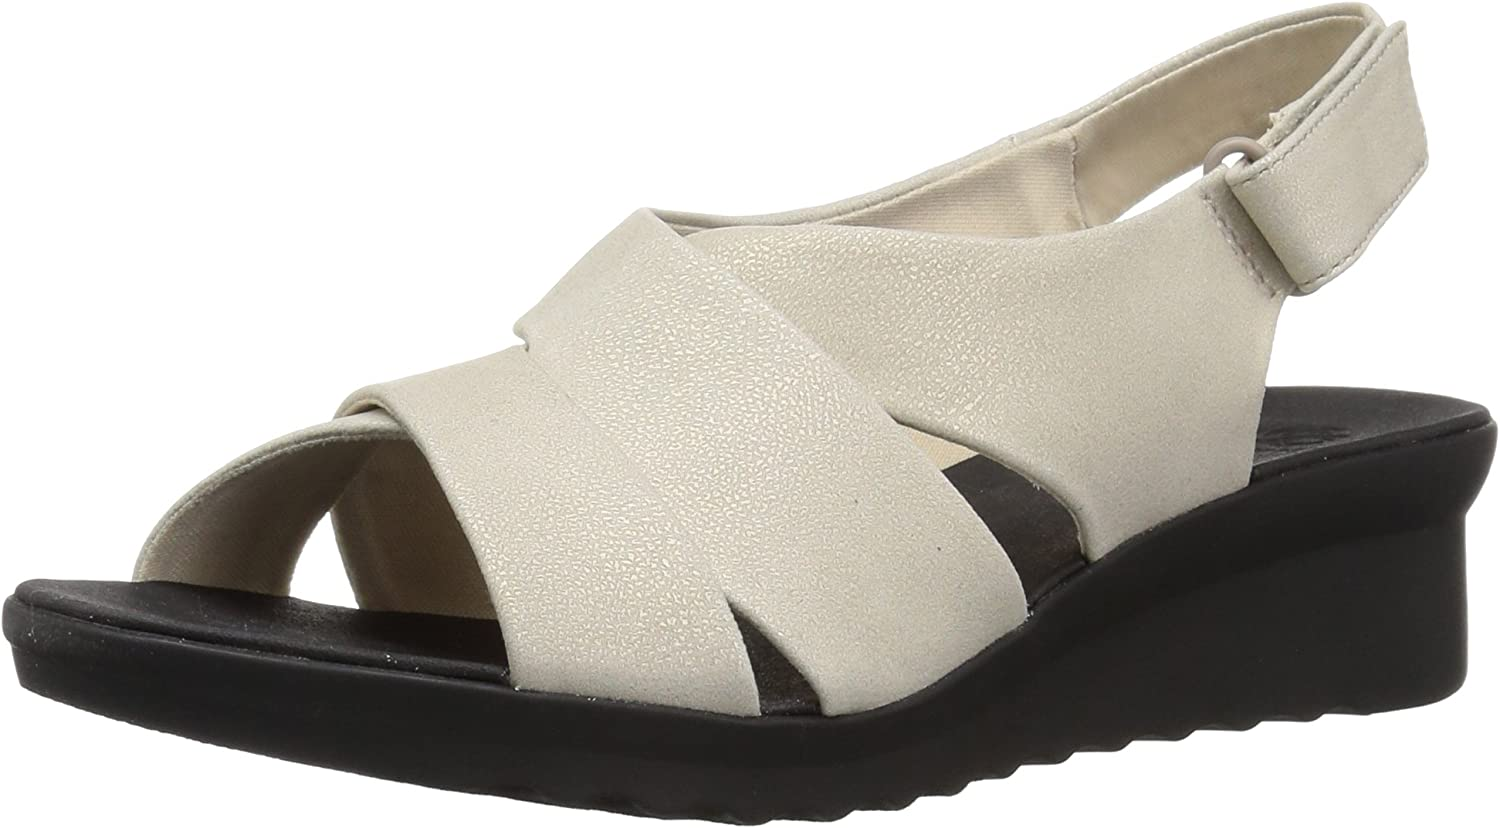 Clarks Wouomo Caddell Petal Seal, Champagne Mettuttiic Synthetic, 9 Medium US